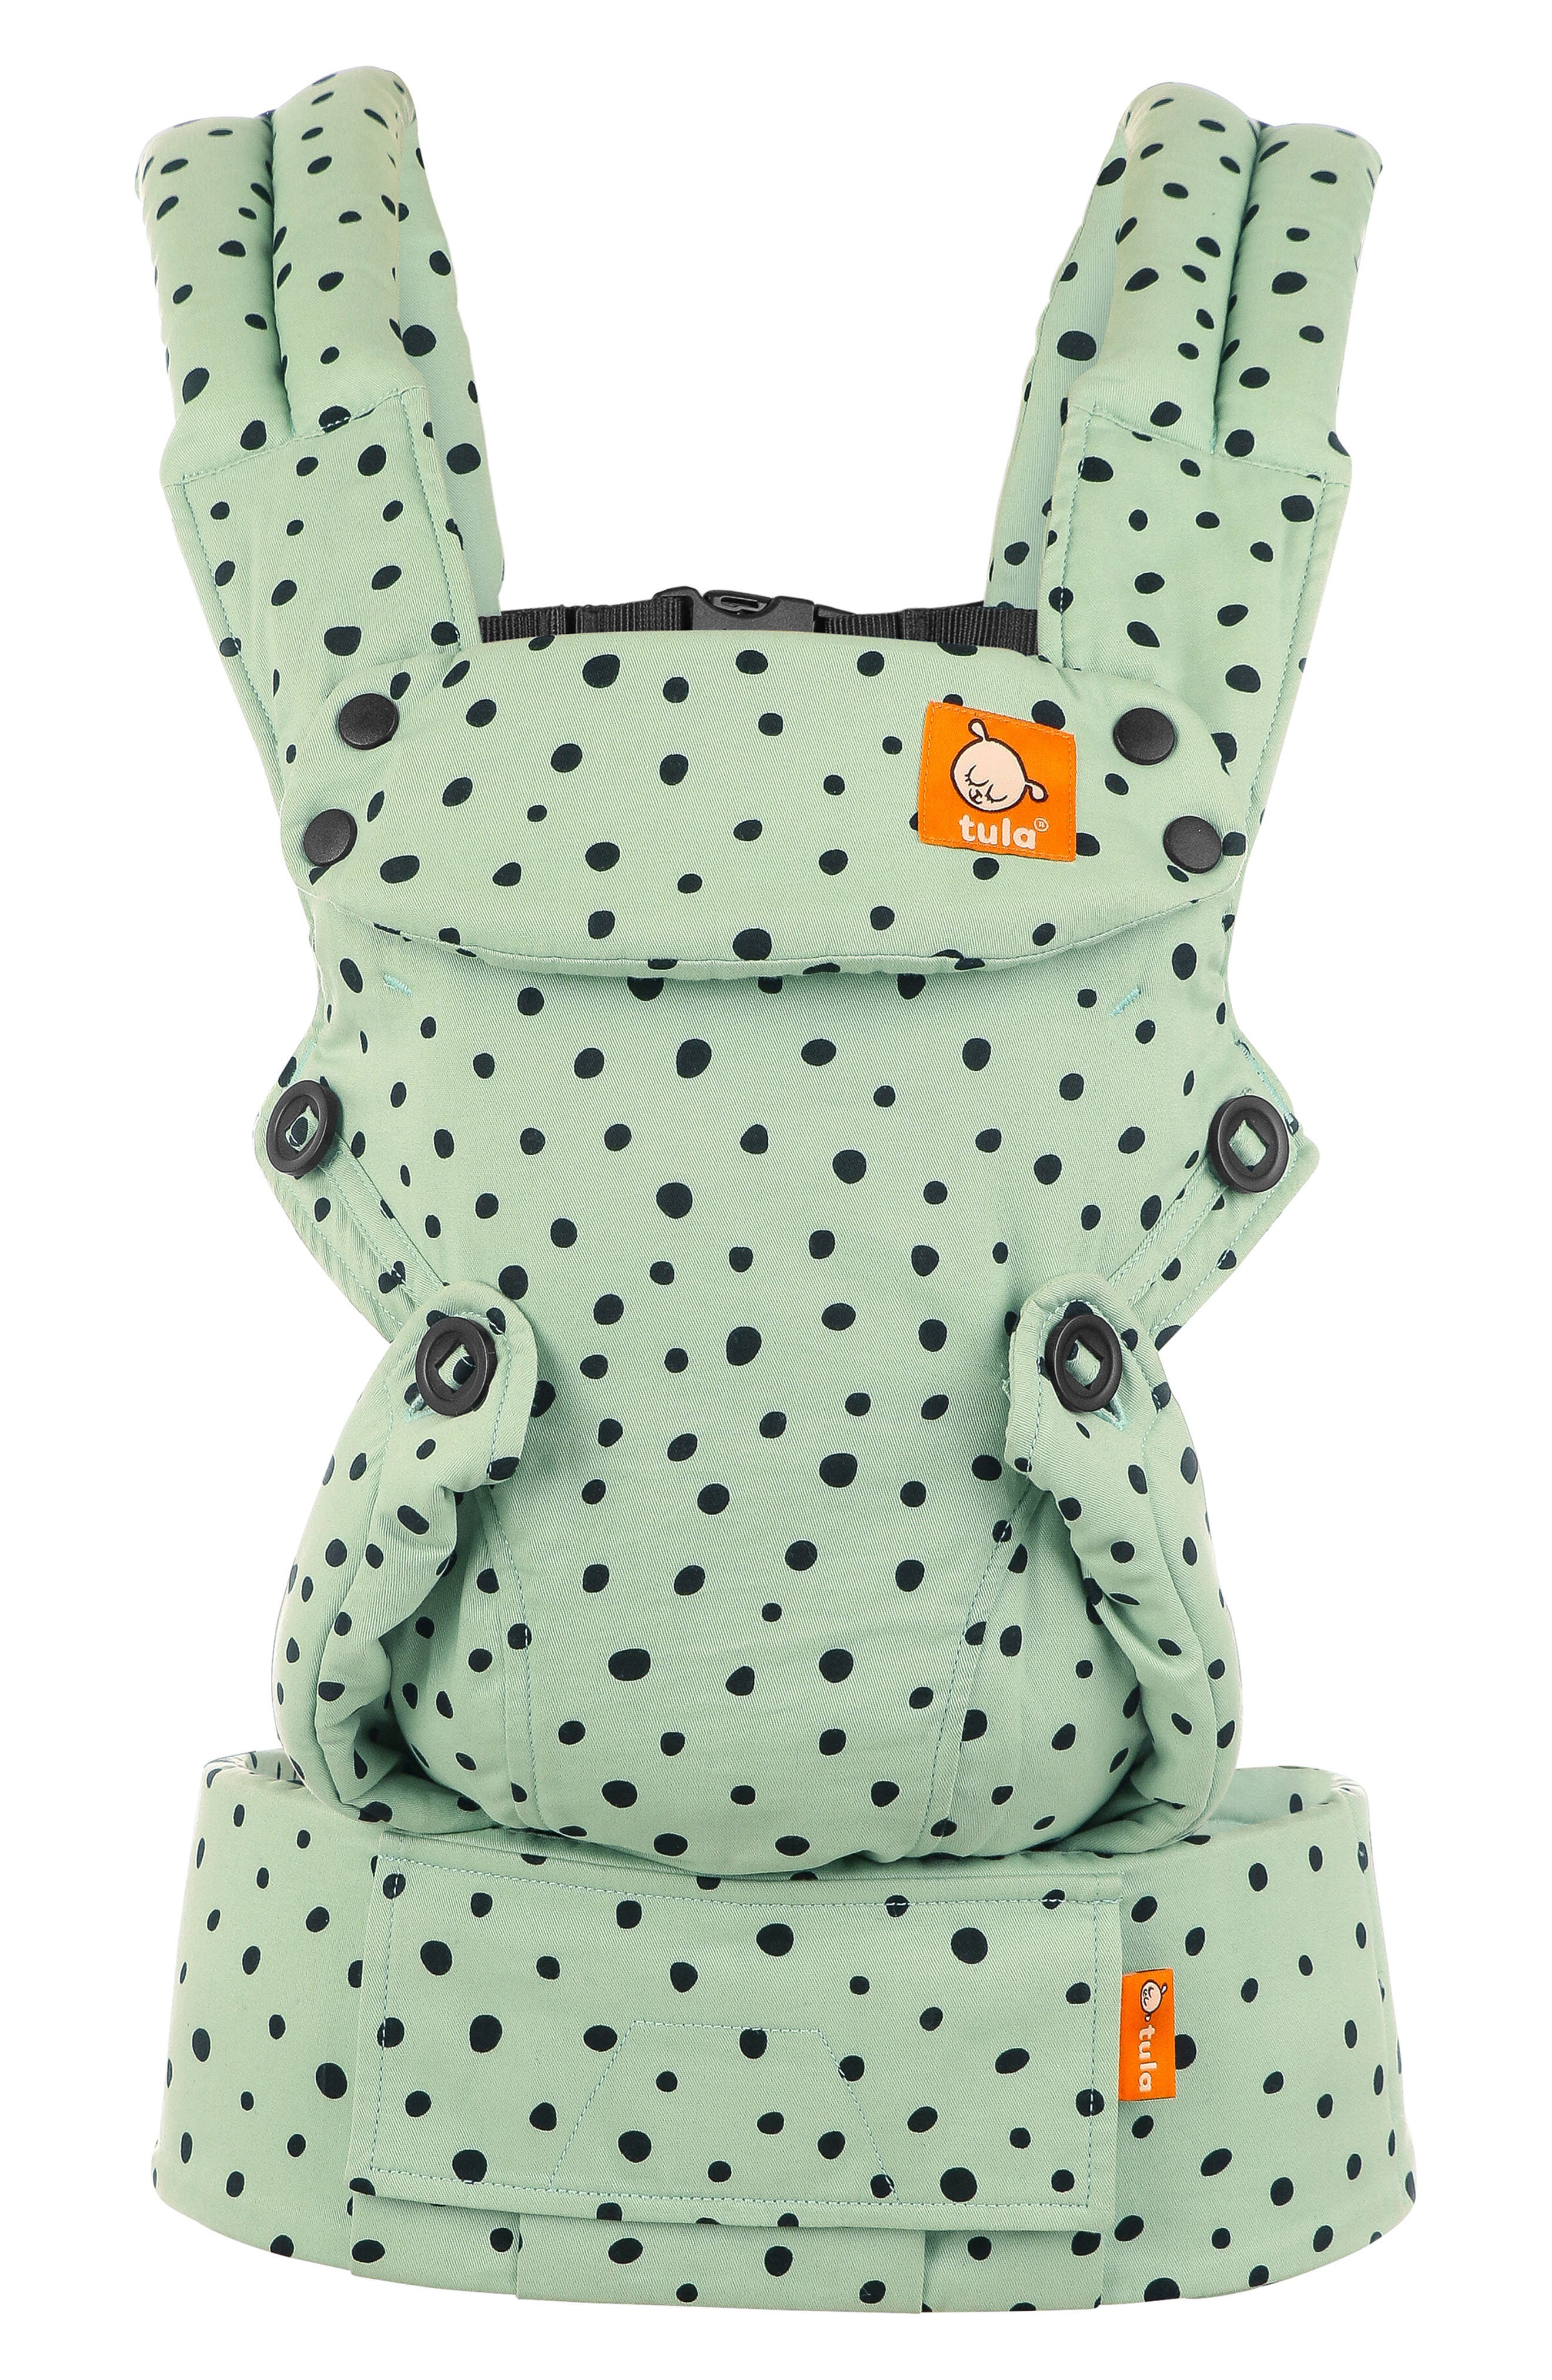 Infant Baby Tula Explore Frontback Baby Carrier Size One Size  Green